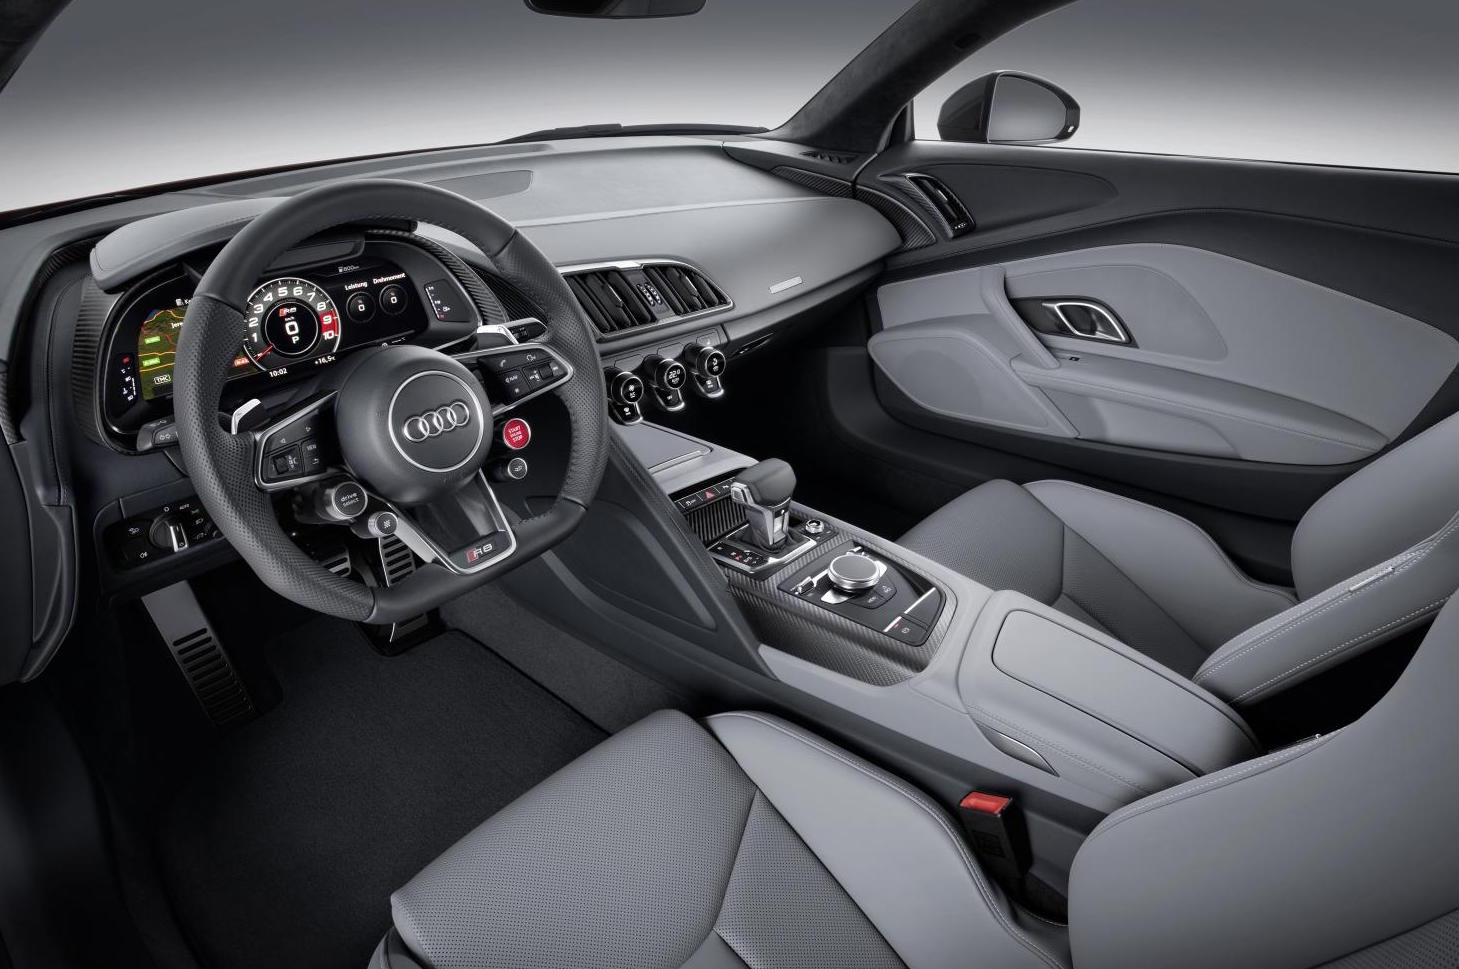 10 Of The Best Car Interiors We've Ever Seen